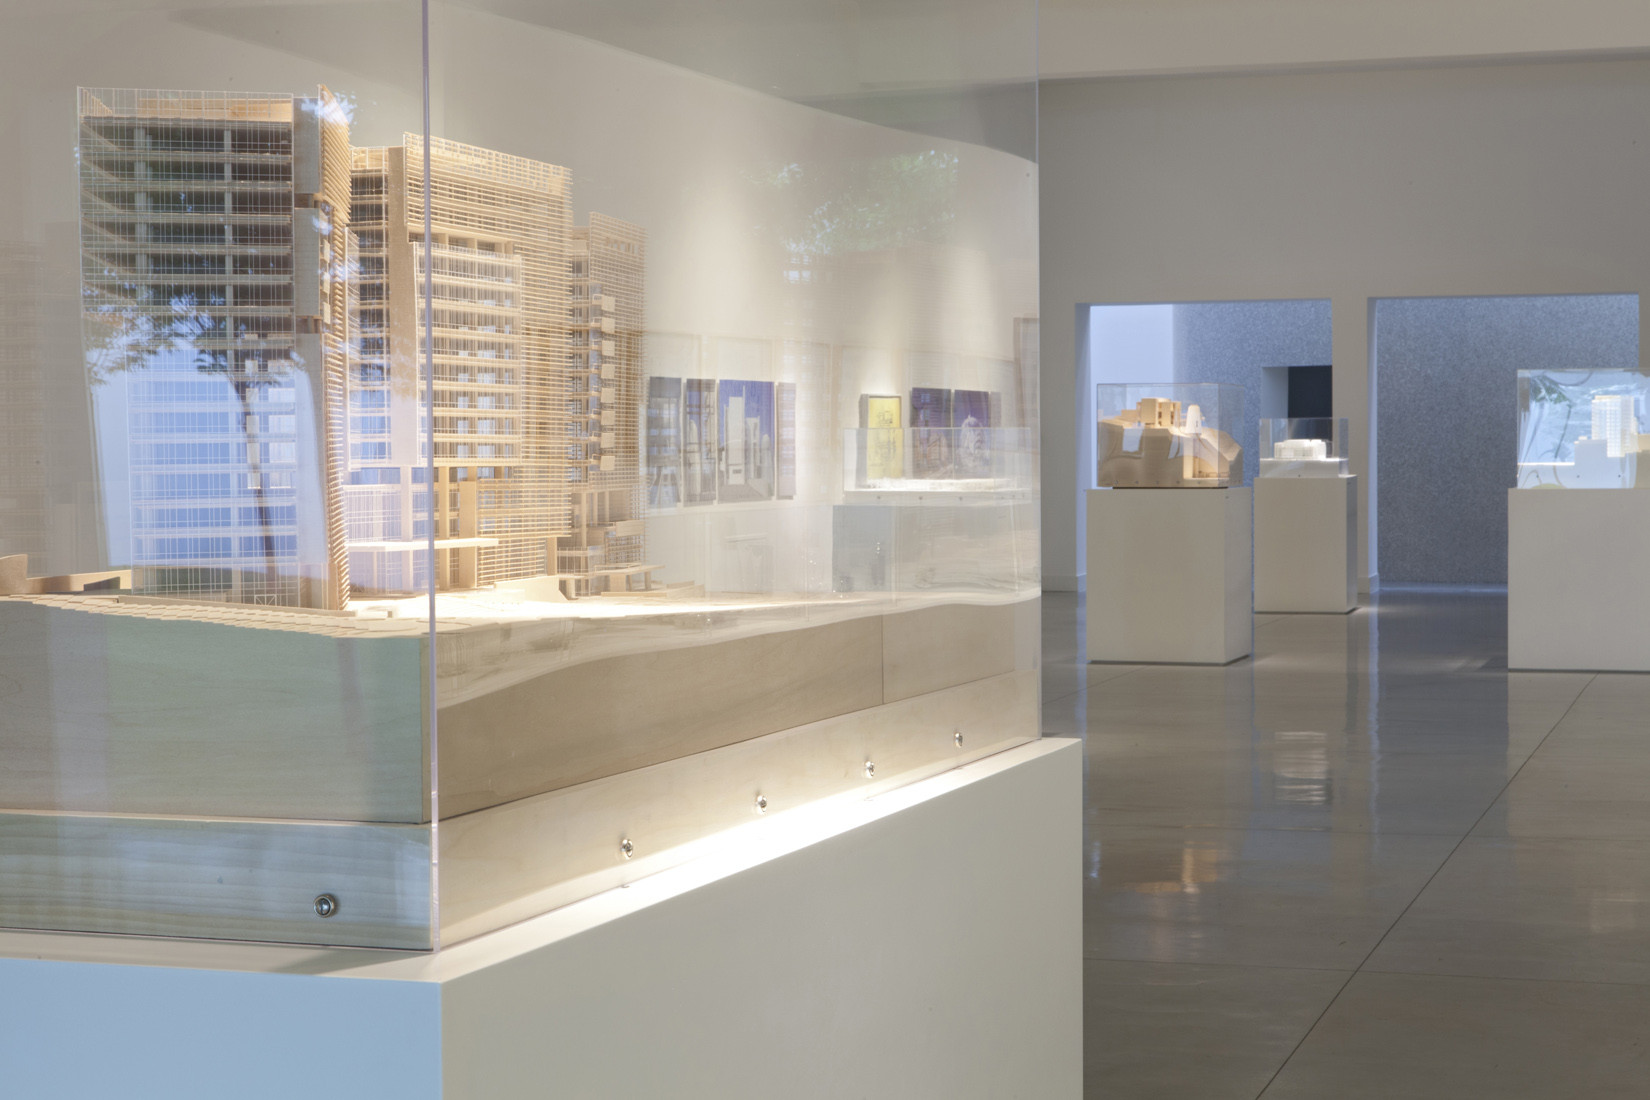 Update: 'Richard Meier – Architecture and Design' Retrospective Exhibition, Courtesy of Fondazione Bisazza + Richard Meier & Partners